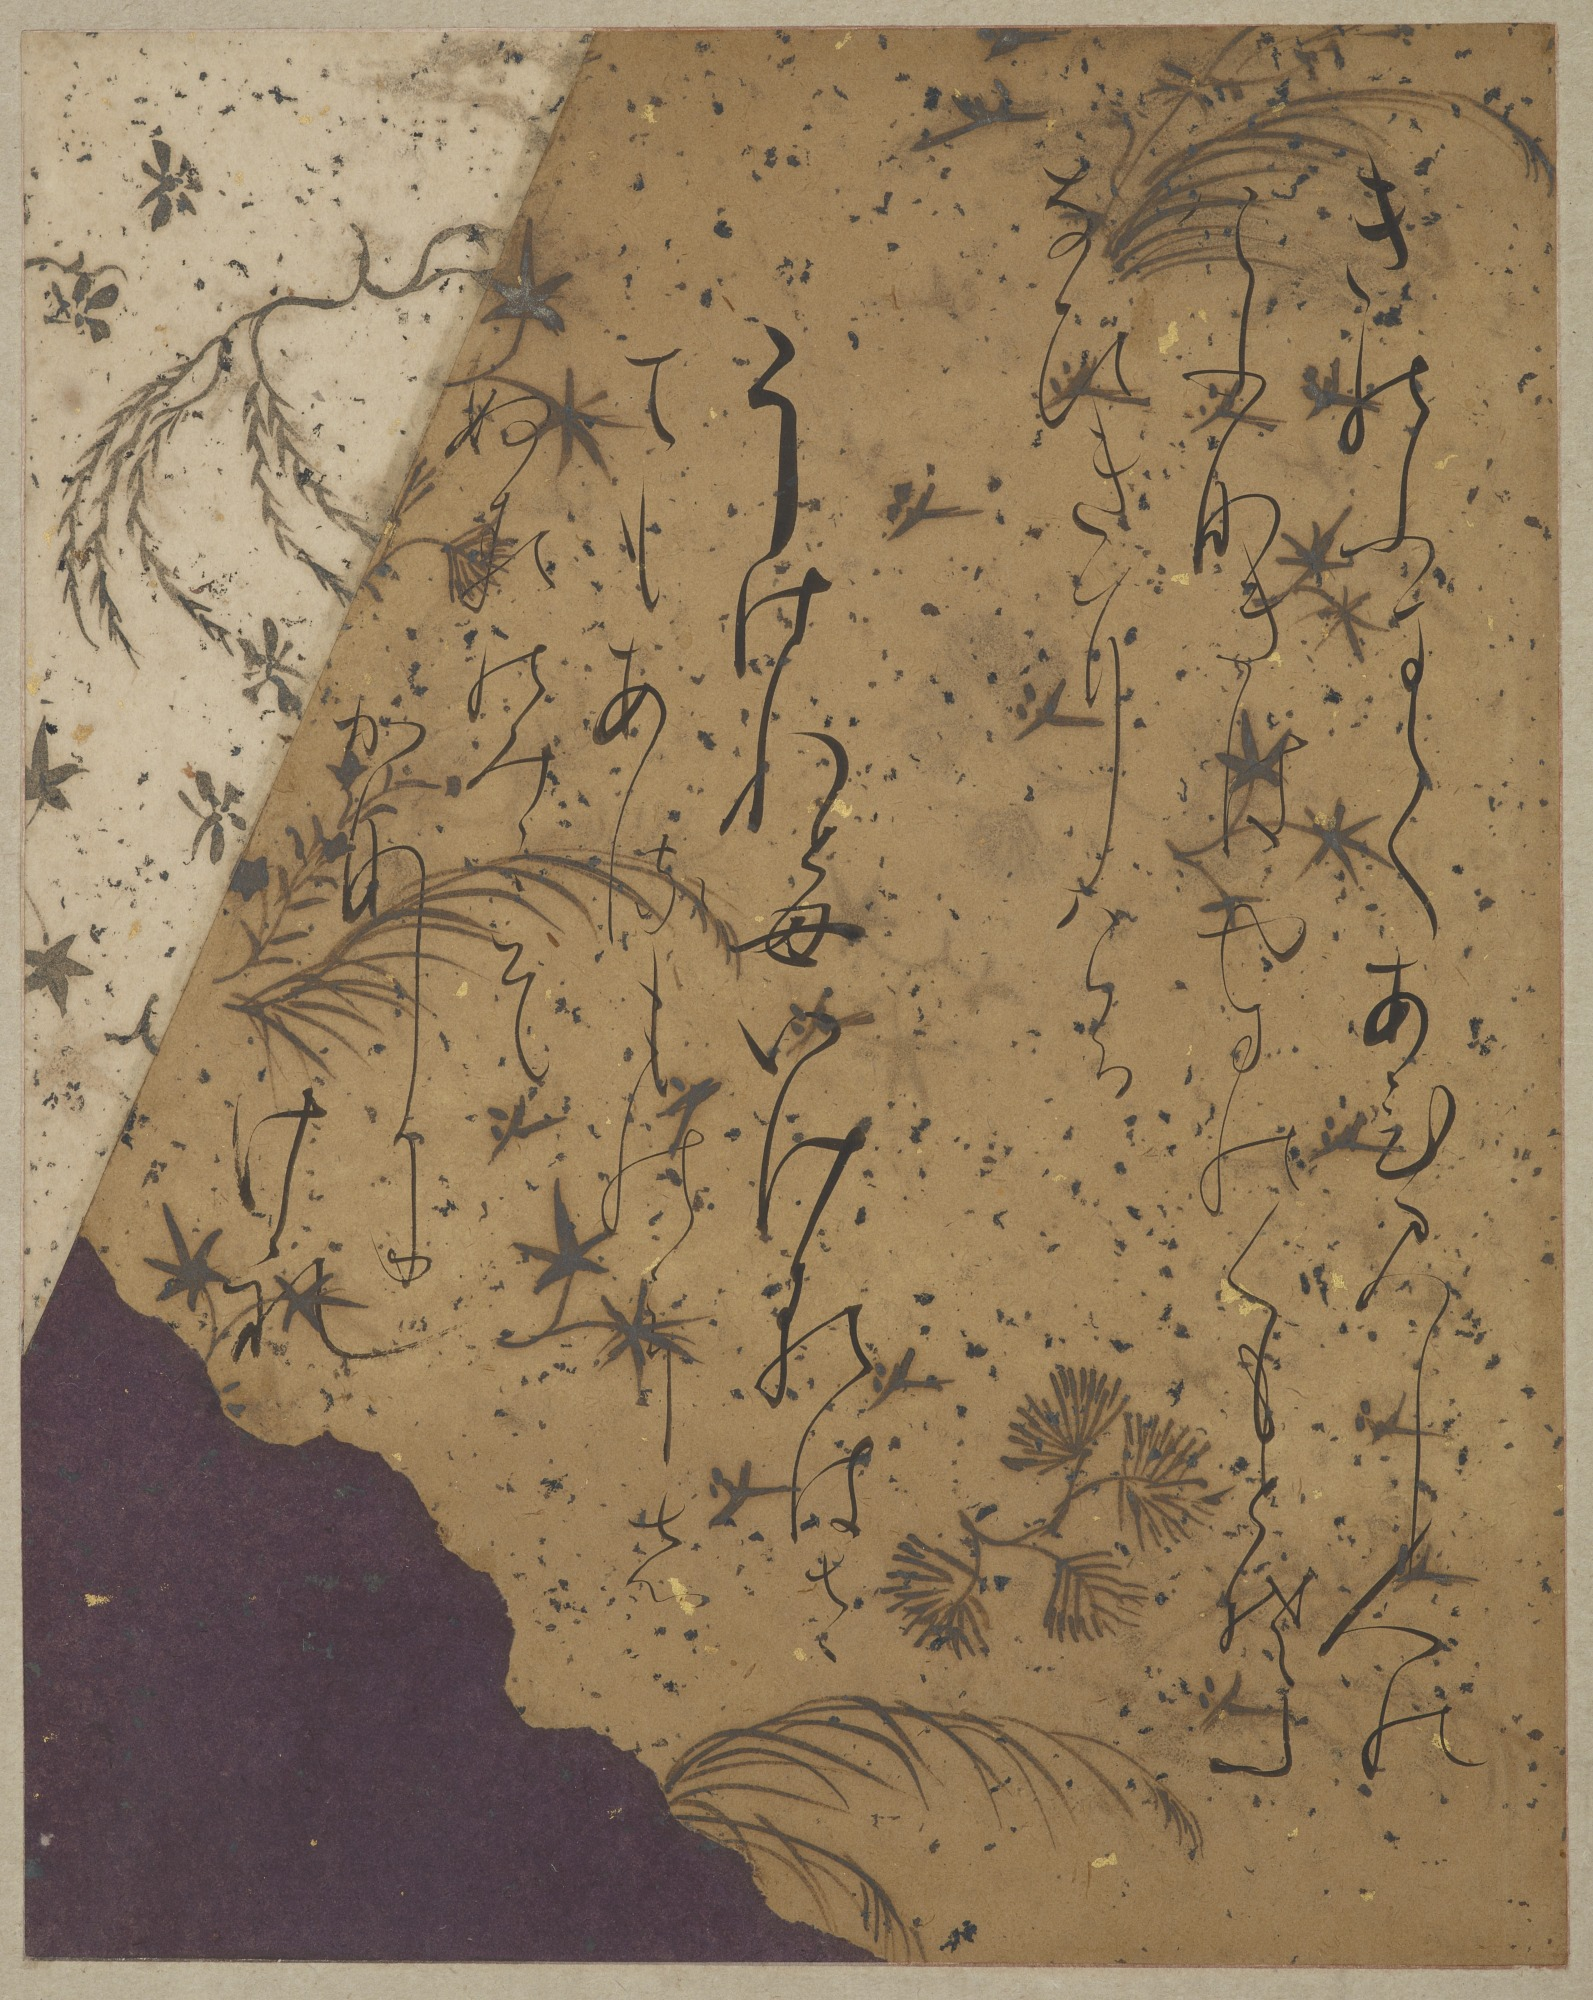 detail: Page from the Ishiyama-gire (dispersed volumes of the Anthology of the Thirty-Six Poets) Poet: Ki no Tsurayuki